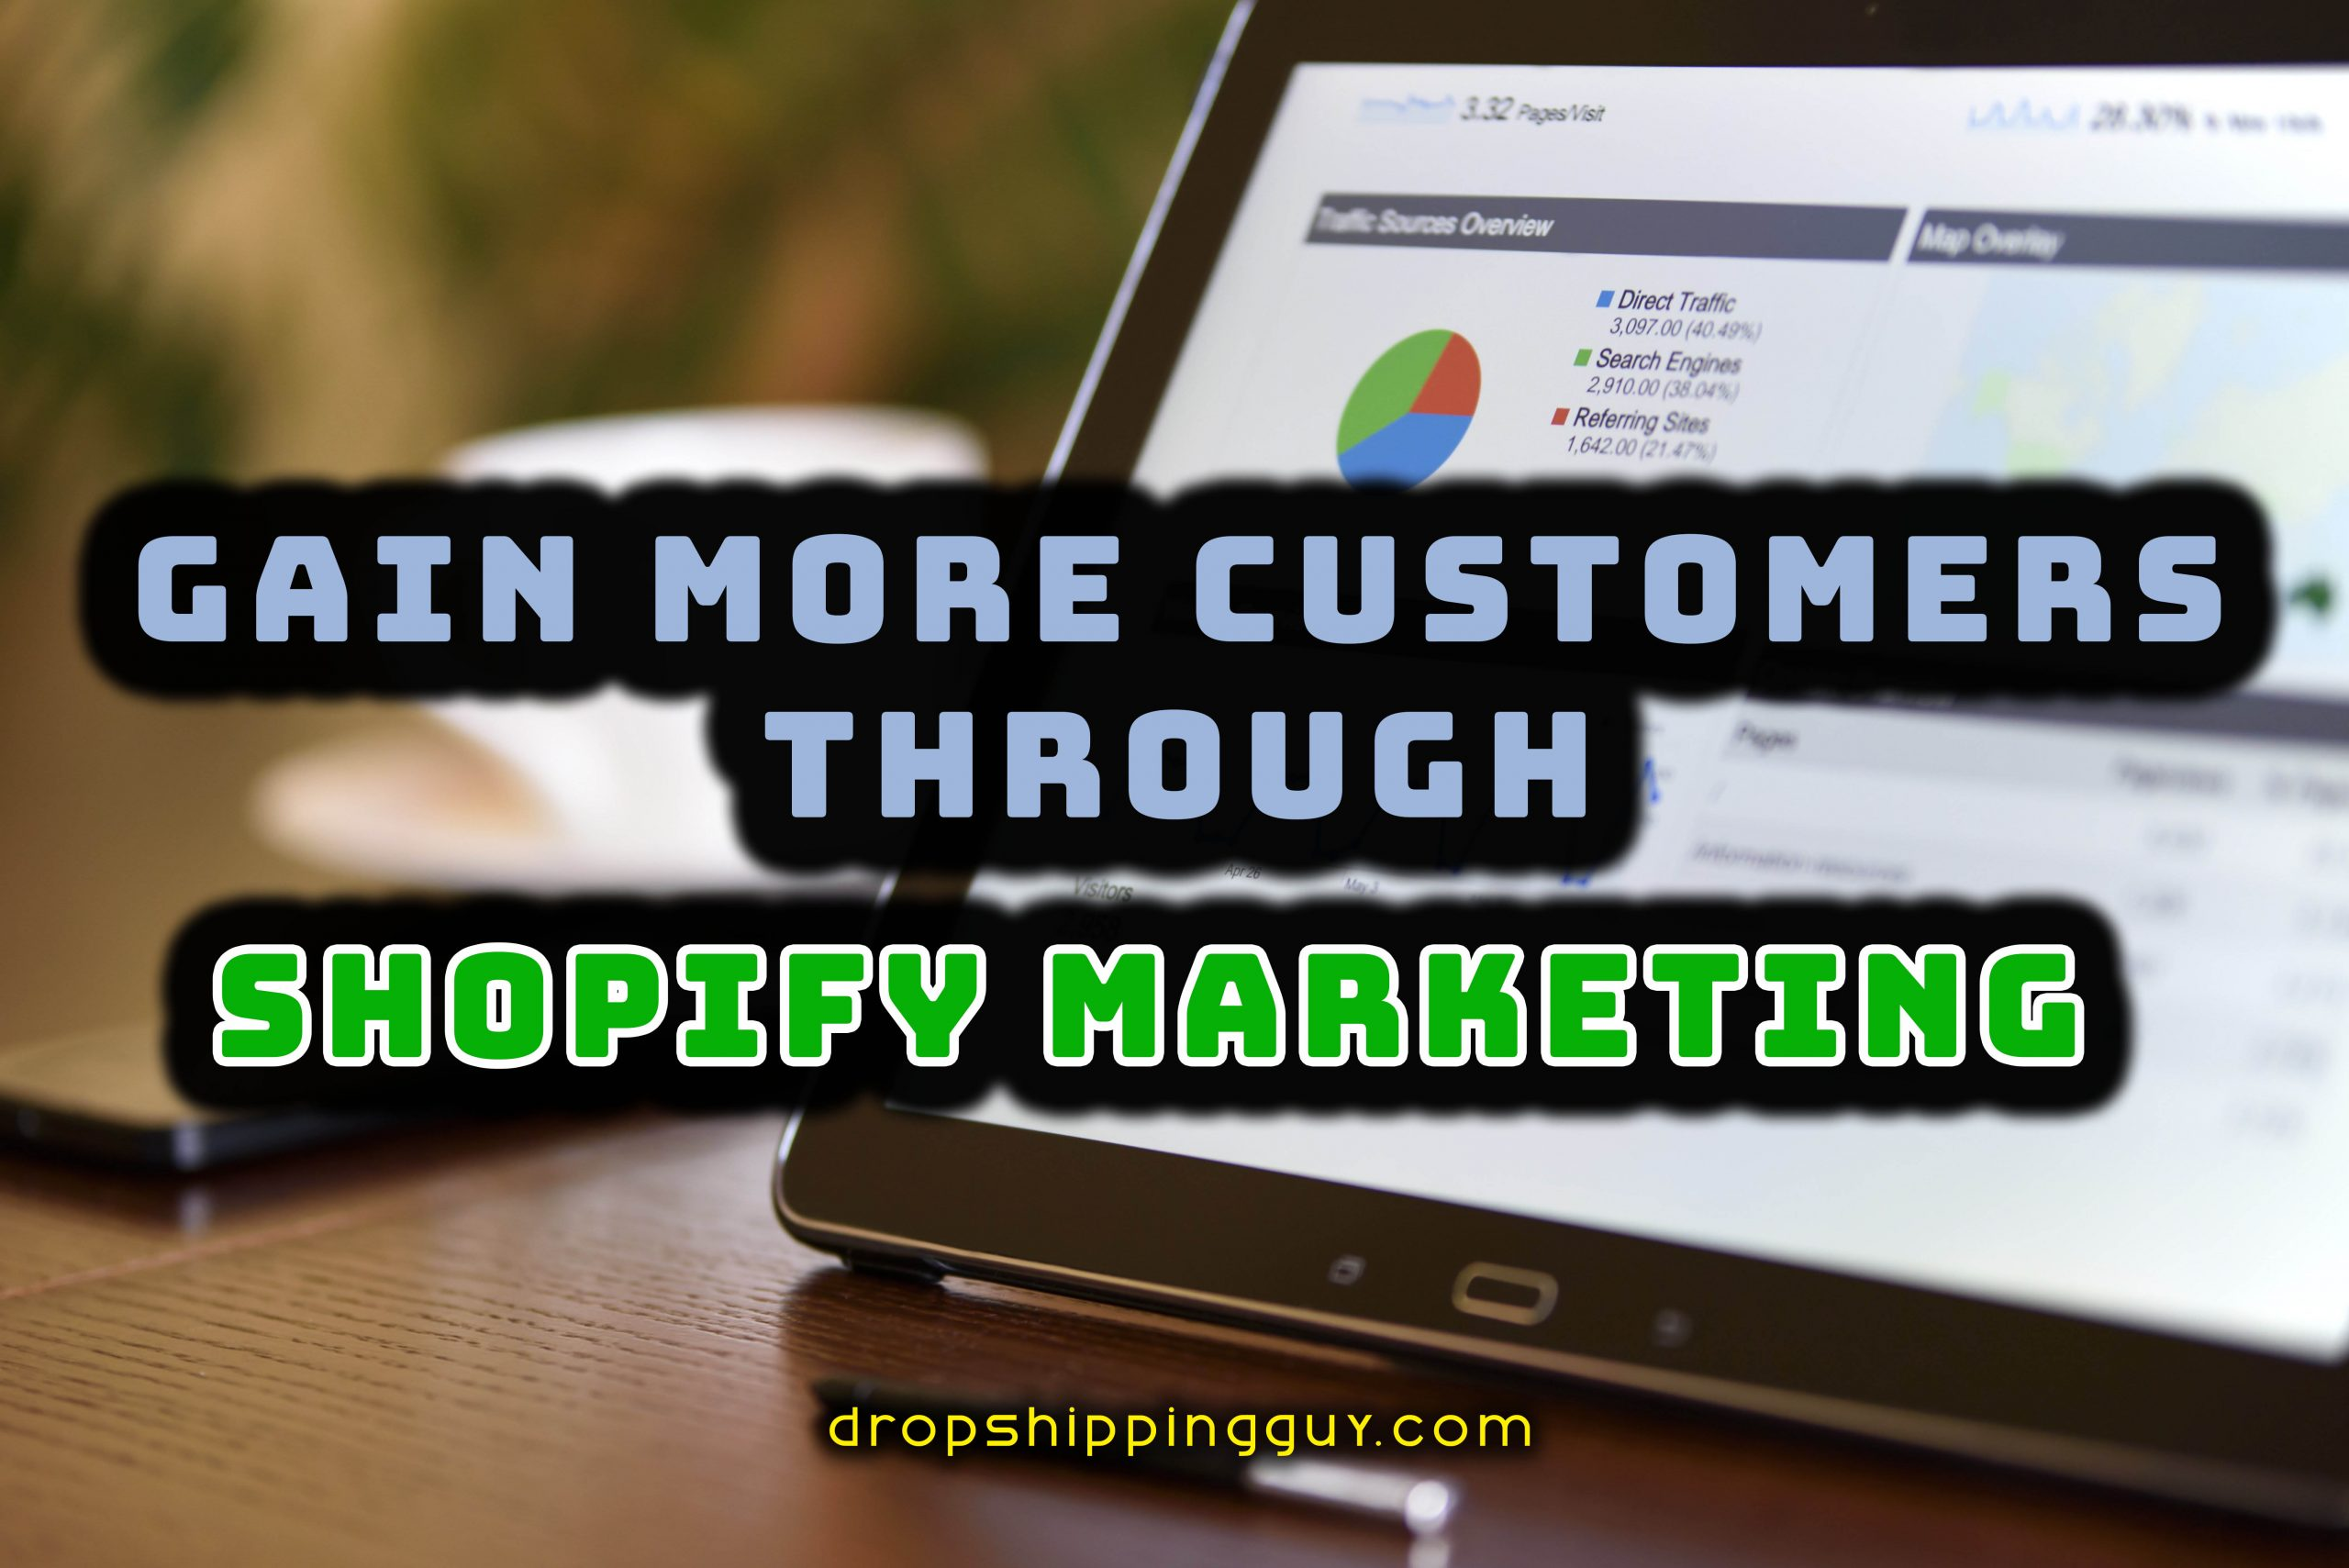 Gain more customers with Shopify Marketing #1 Best tip